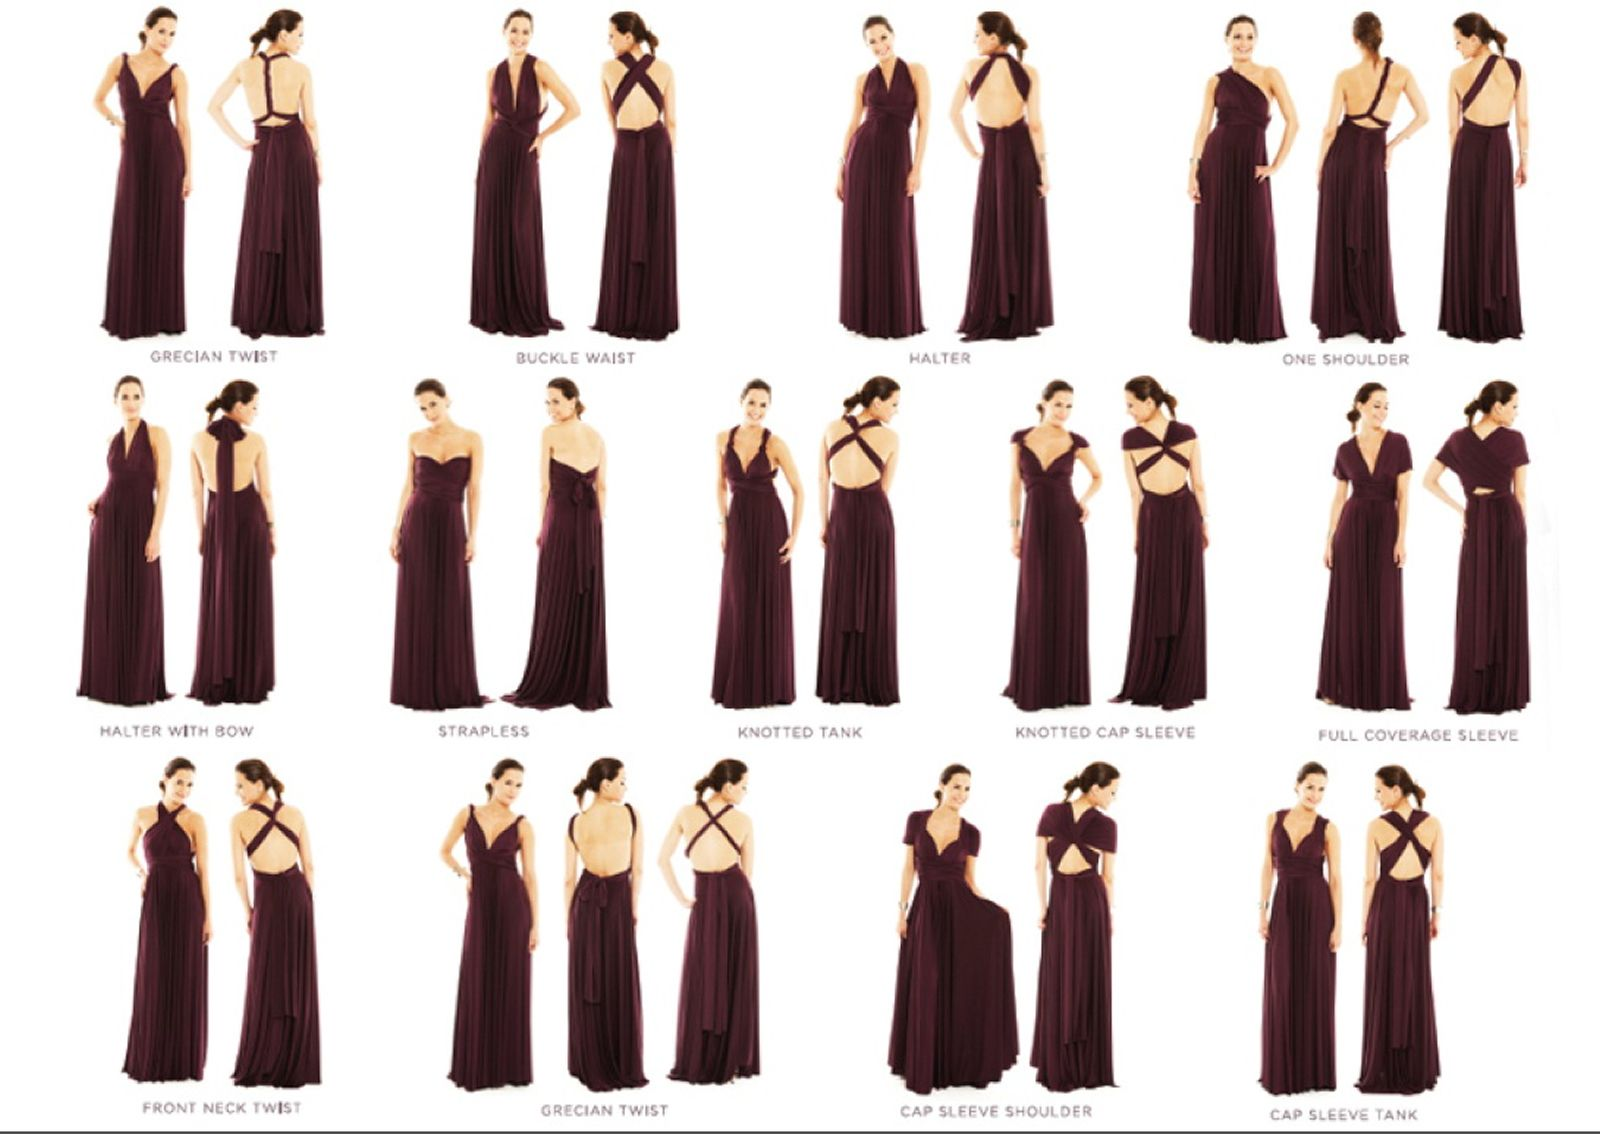 2 birds bridesmaid dress can be wrapped 15 ways are the 2 birds bridesmaid dress can be wrapped 15 ways are the different ombrellifo Image collections